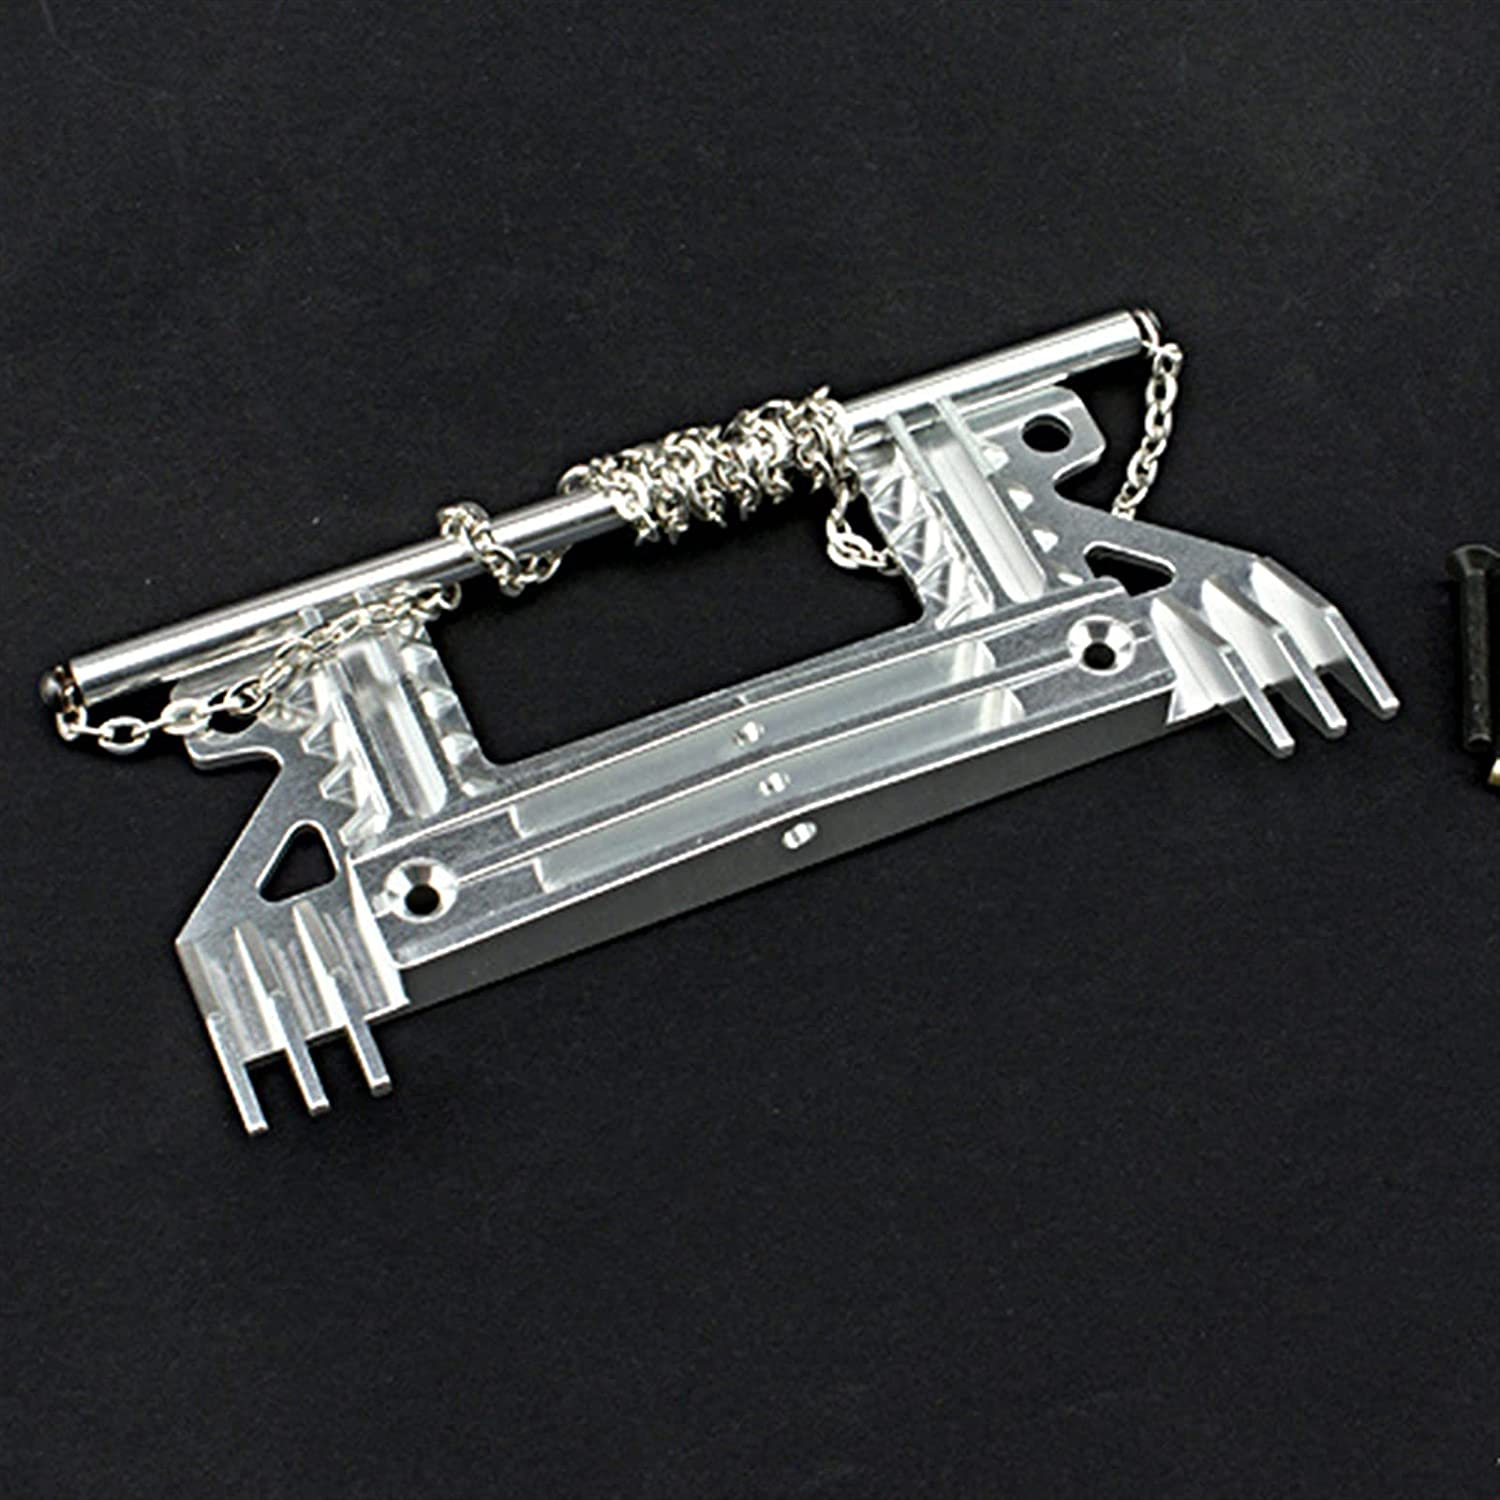 LUOERPI 1 14 Remote High material Limited time for free shipping Control Tractor Truck Metal Fron Scania R620